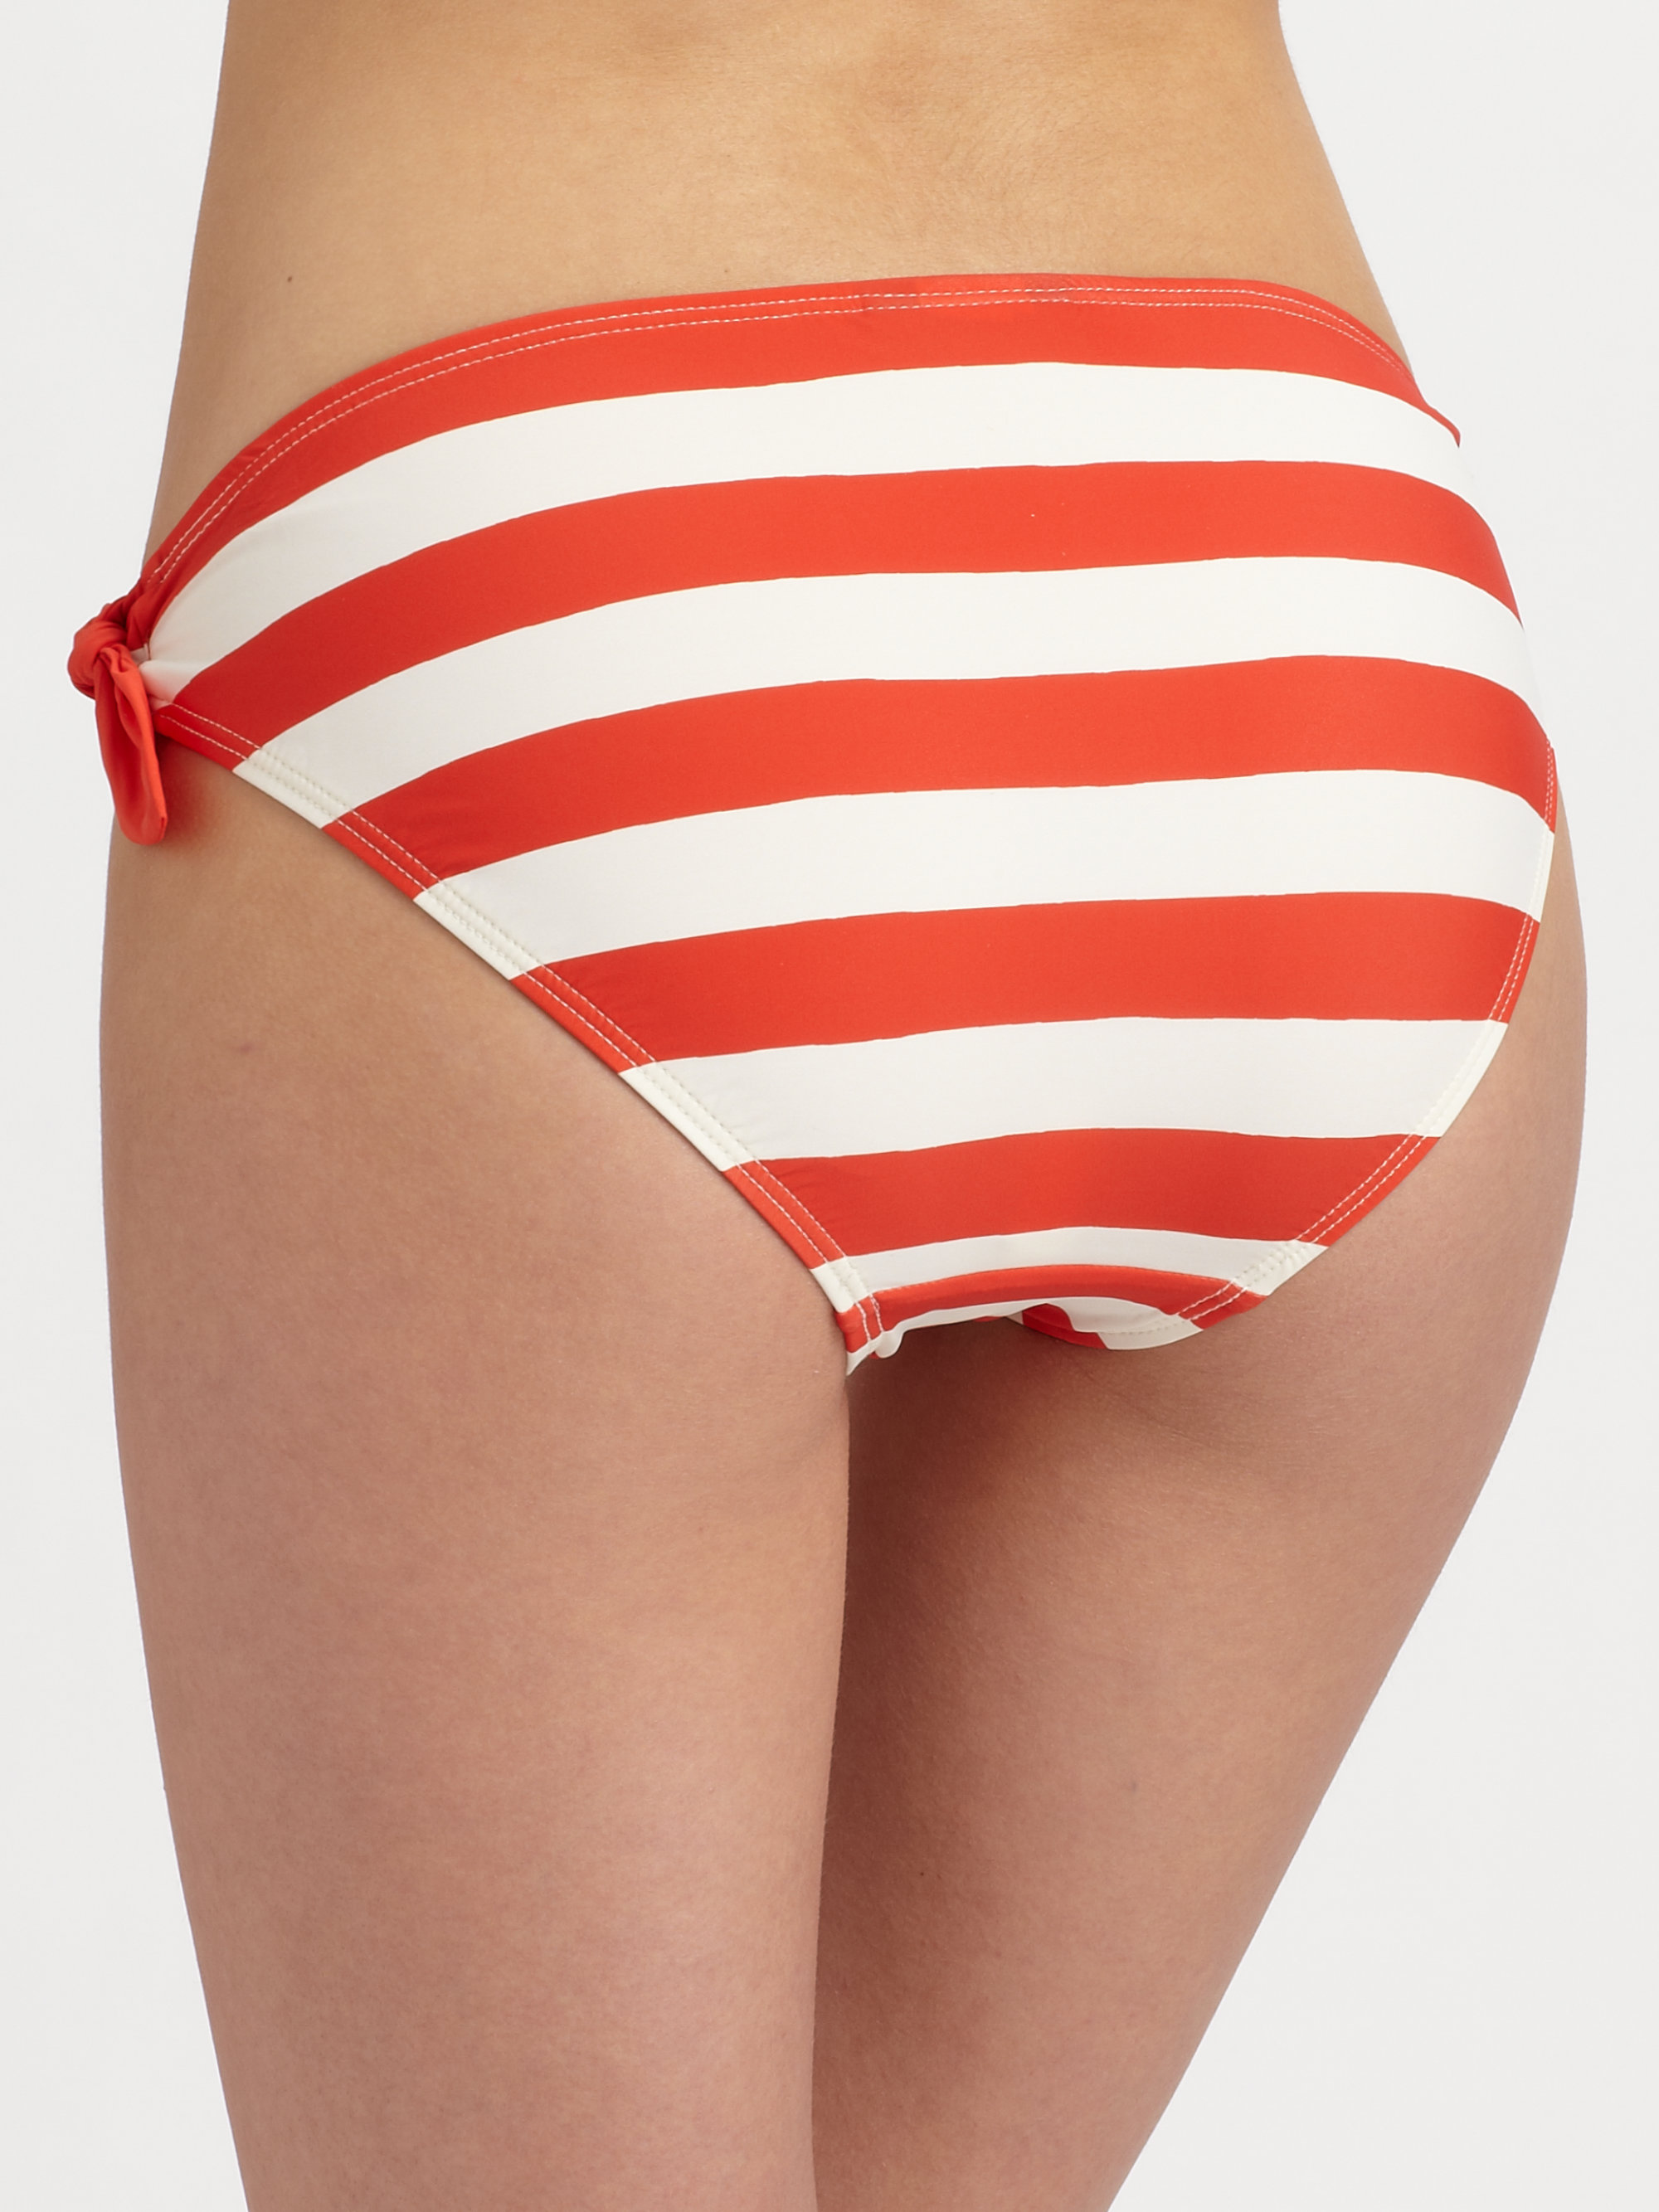 red striped bikini marc by marc jacobs bella striped bikini bottom in red lyst 1757